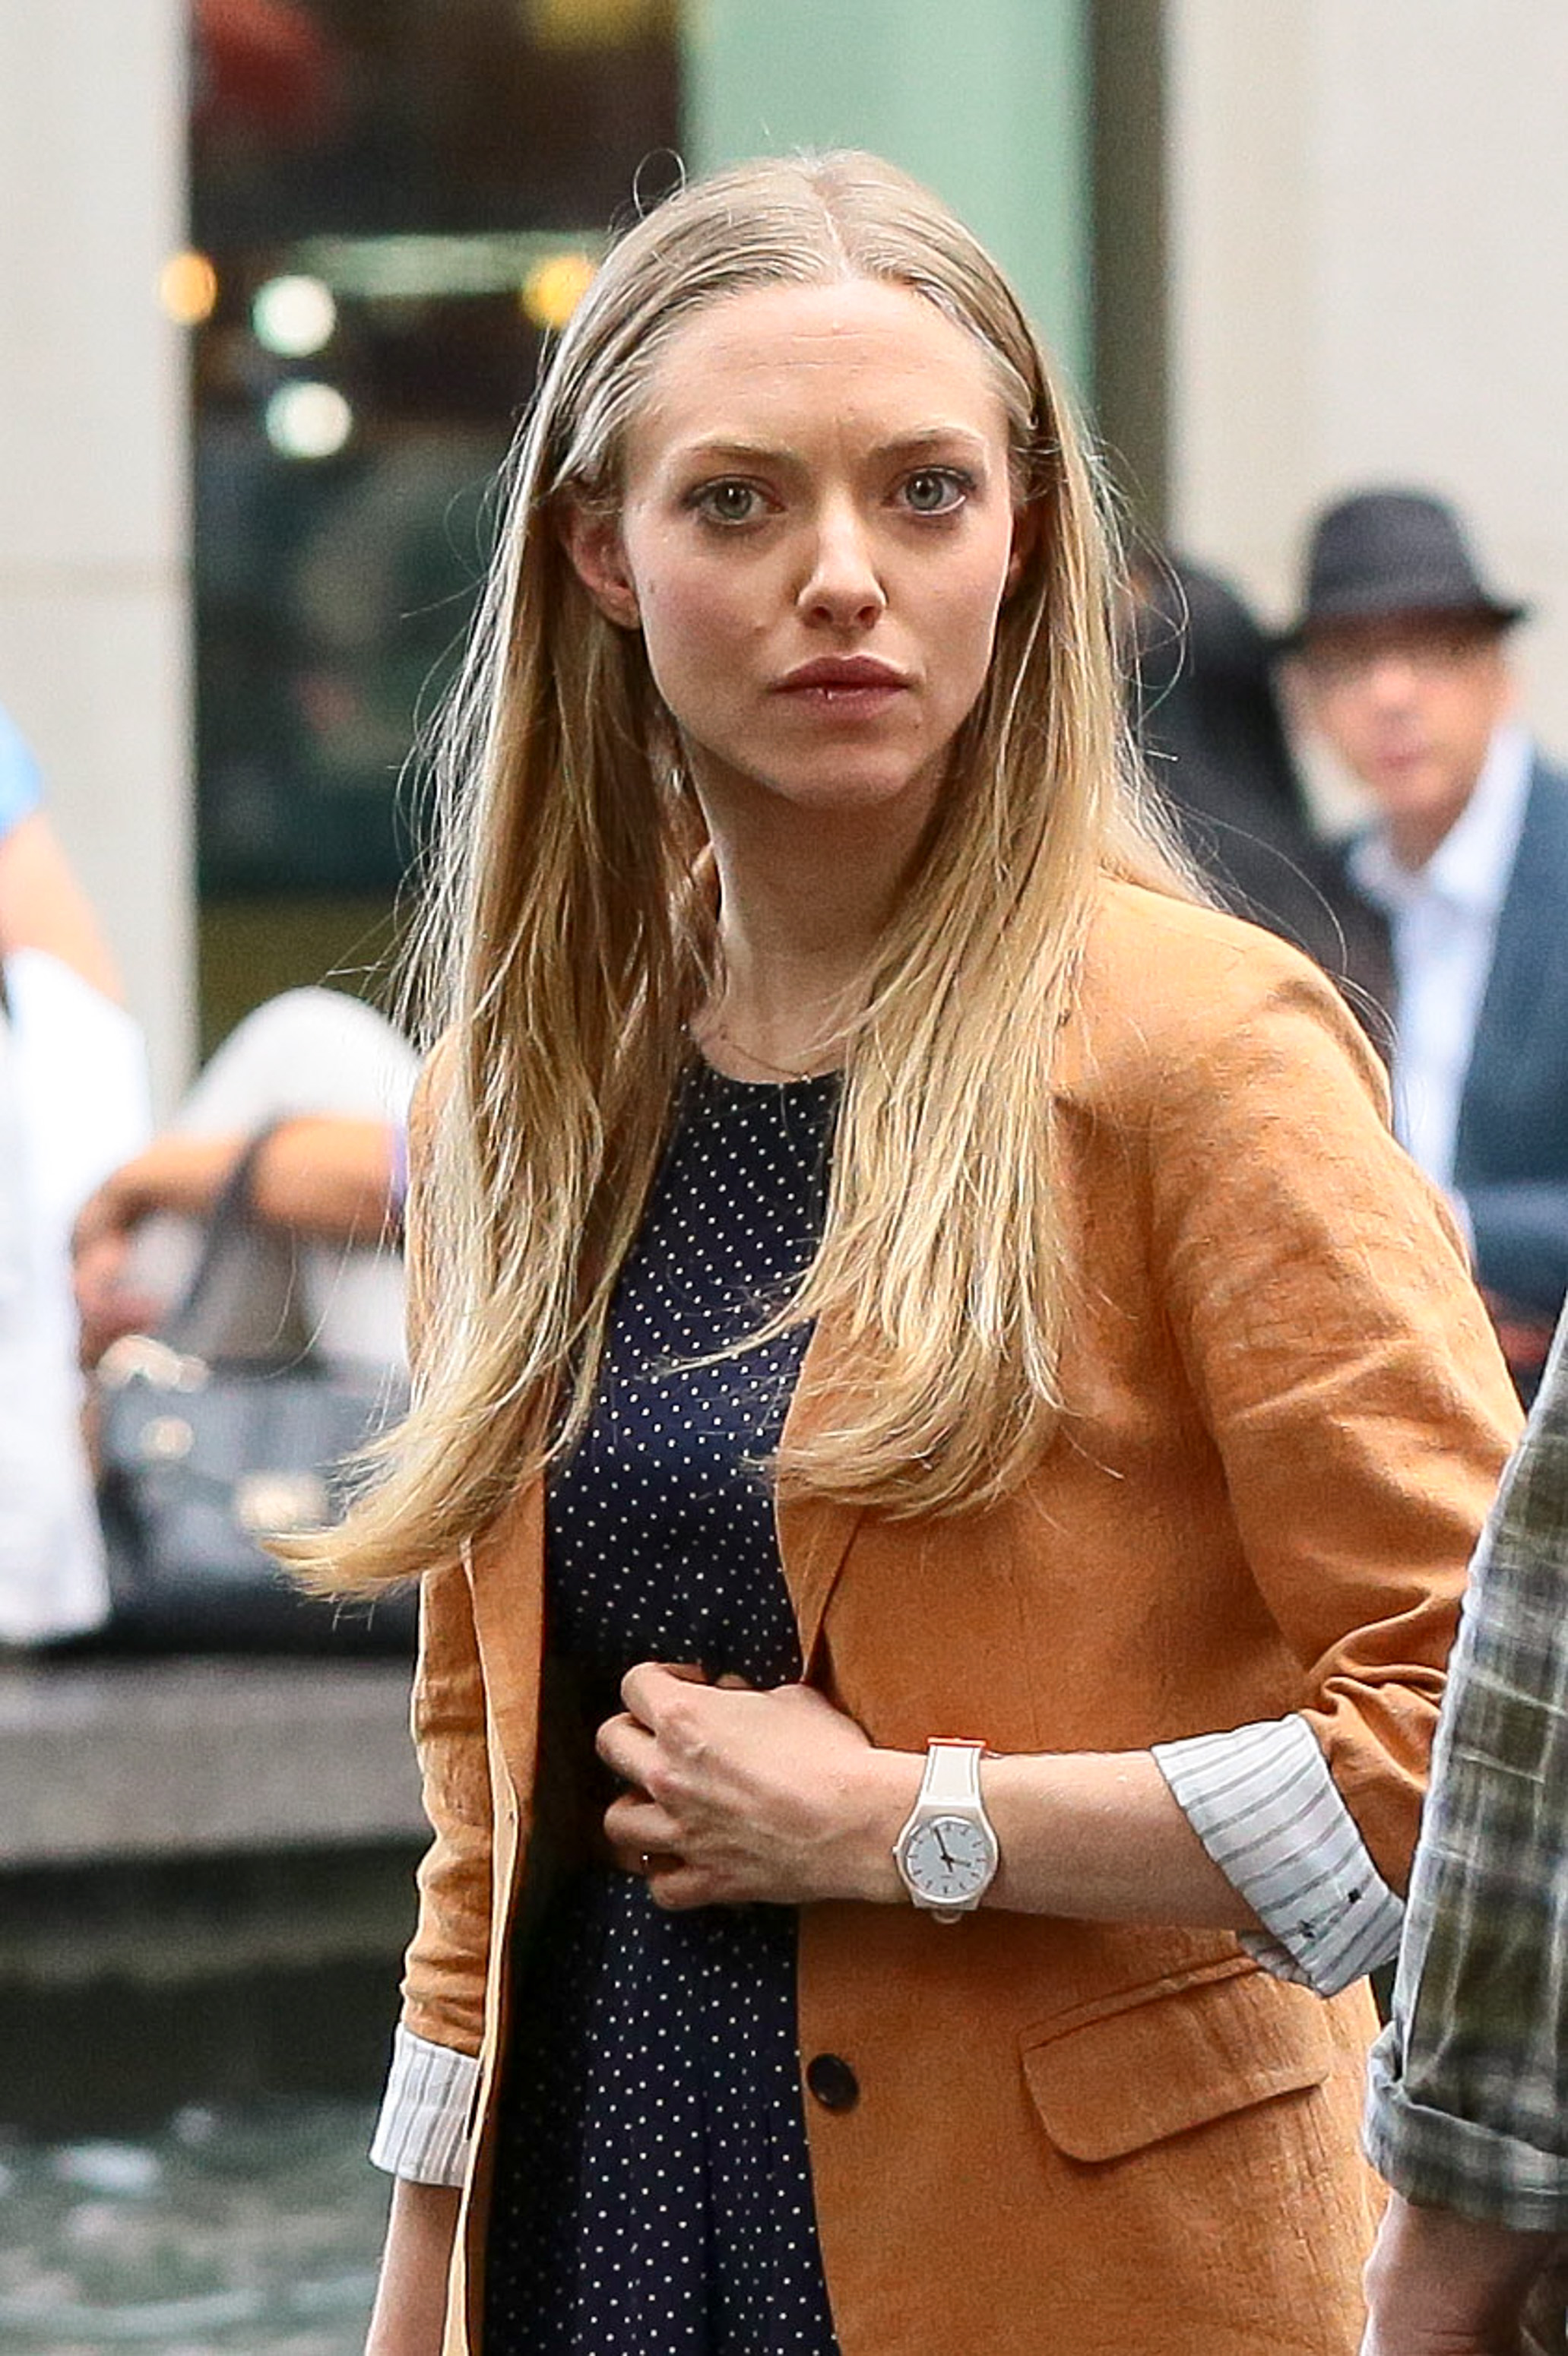 Amanda Seyfried Reveals Being 'Overweight' Has Affected ...